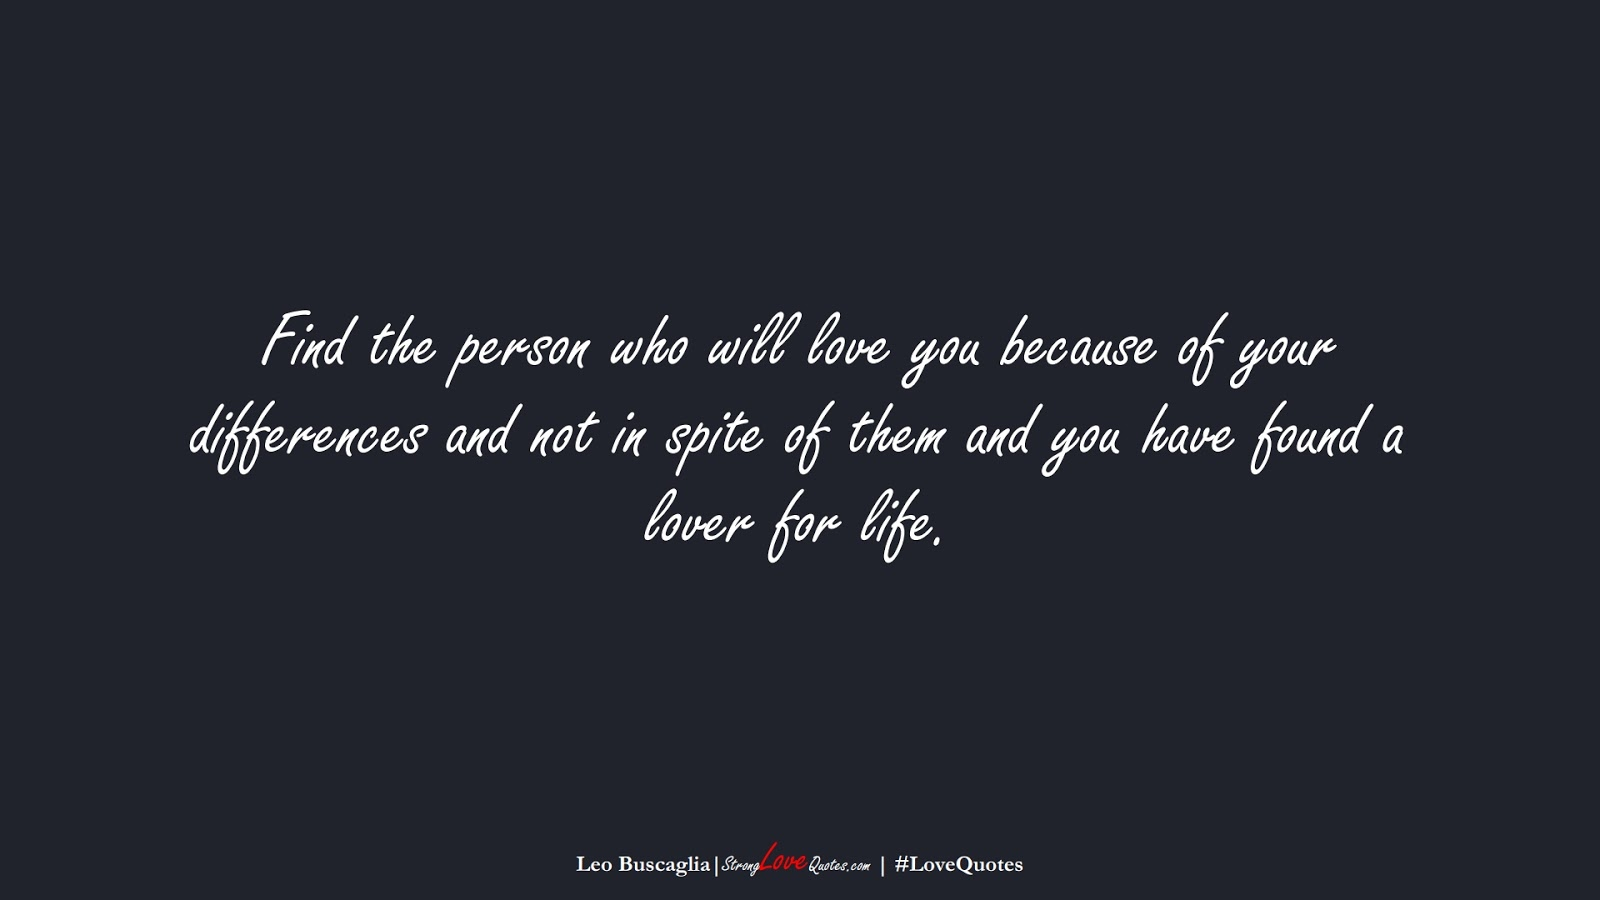 Find the person who will love you because of your differences and not in spite of them and you have found a lover for life. (Leo Buscaglia);  #LoveQuotes